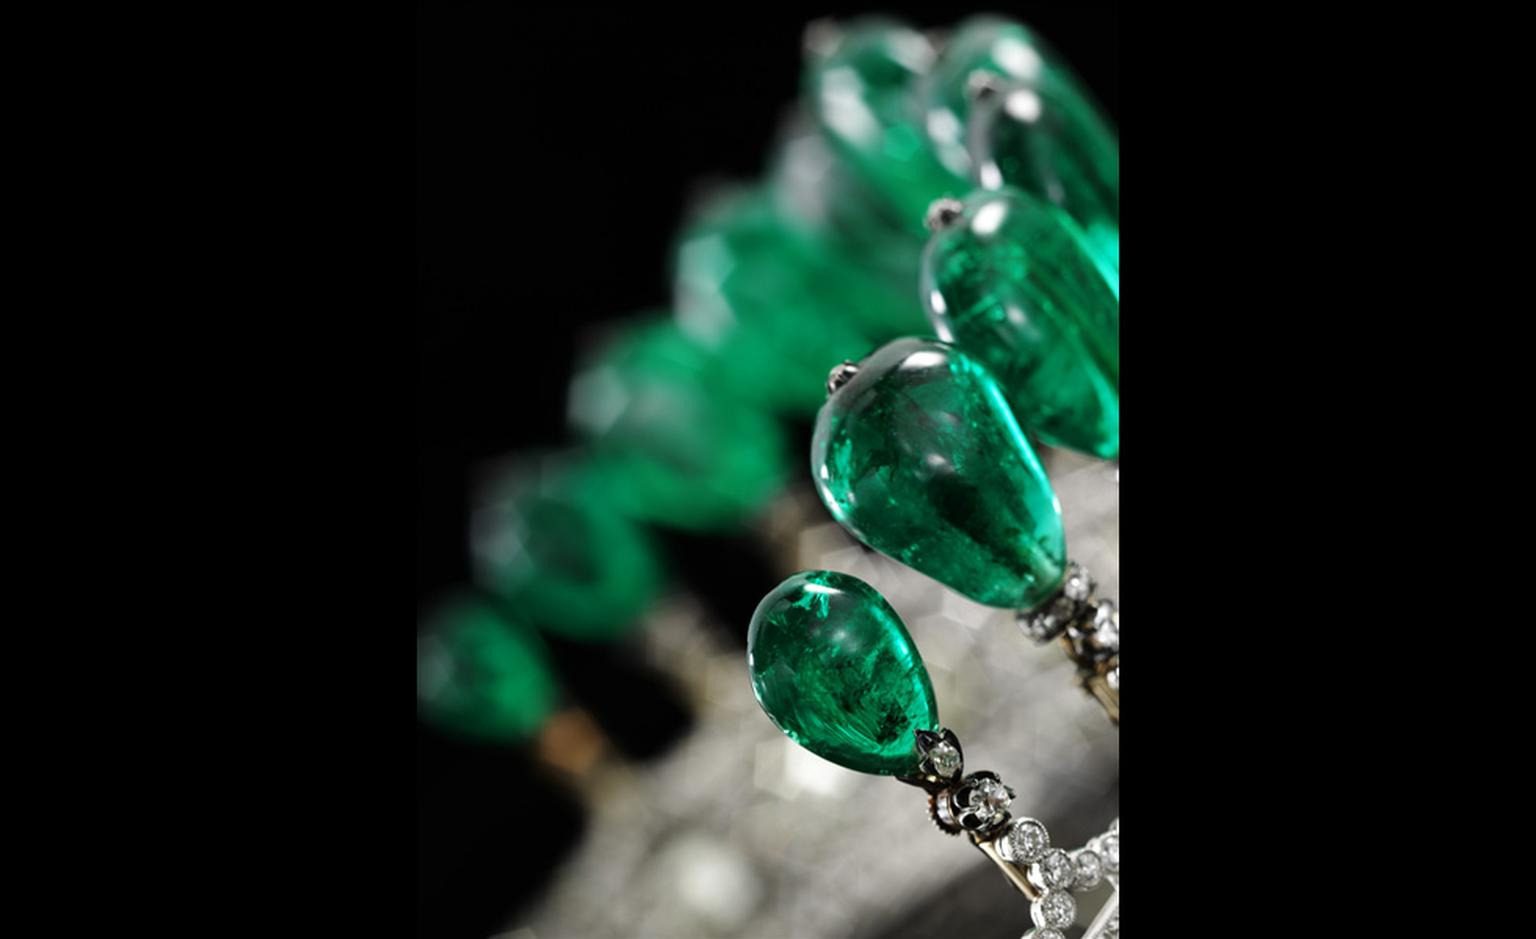 Detail of emerald tiara circa 1900 coming up for sale at Sotheby's Geneva May 17 Auction, from the collection of Princess Katharina Henckel von Donnersmarck